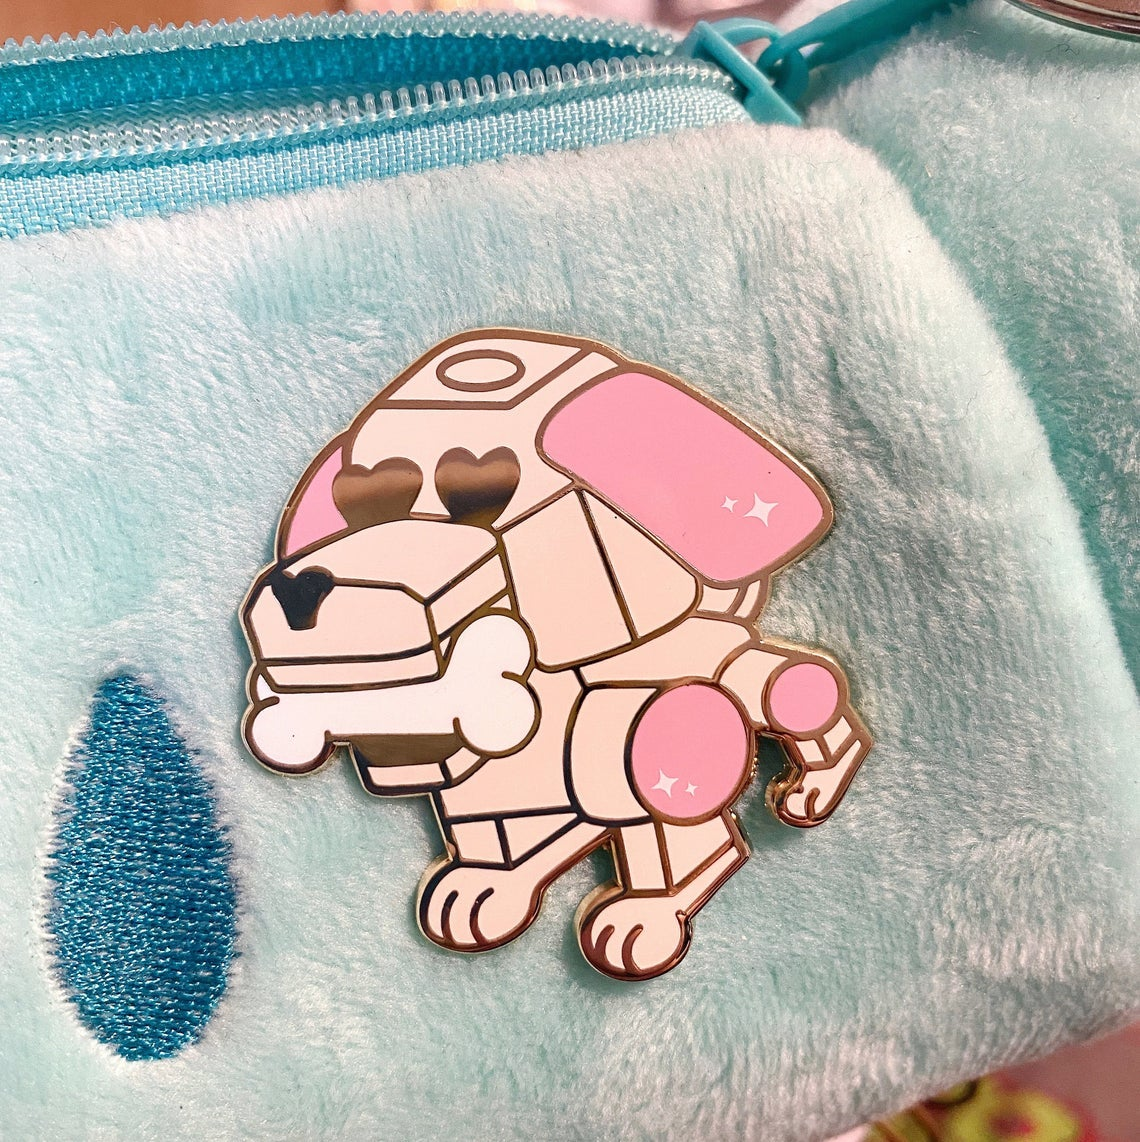 pin shaped like that robot dog from the 2000s